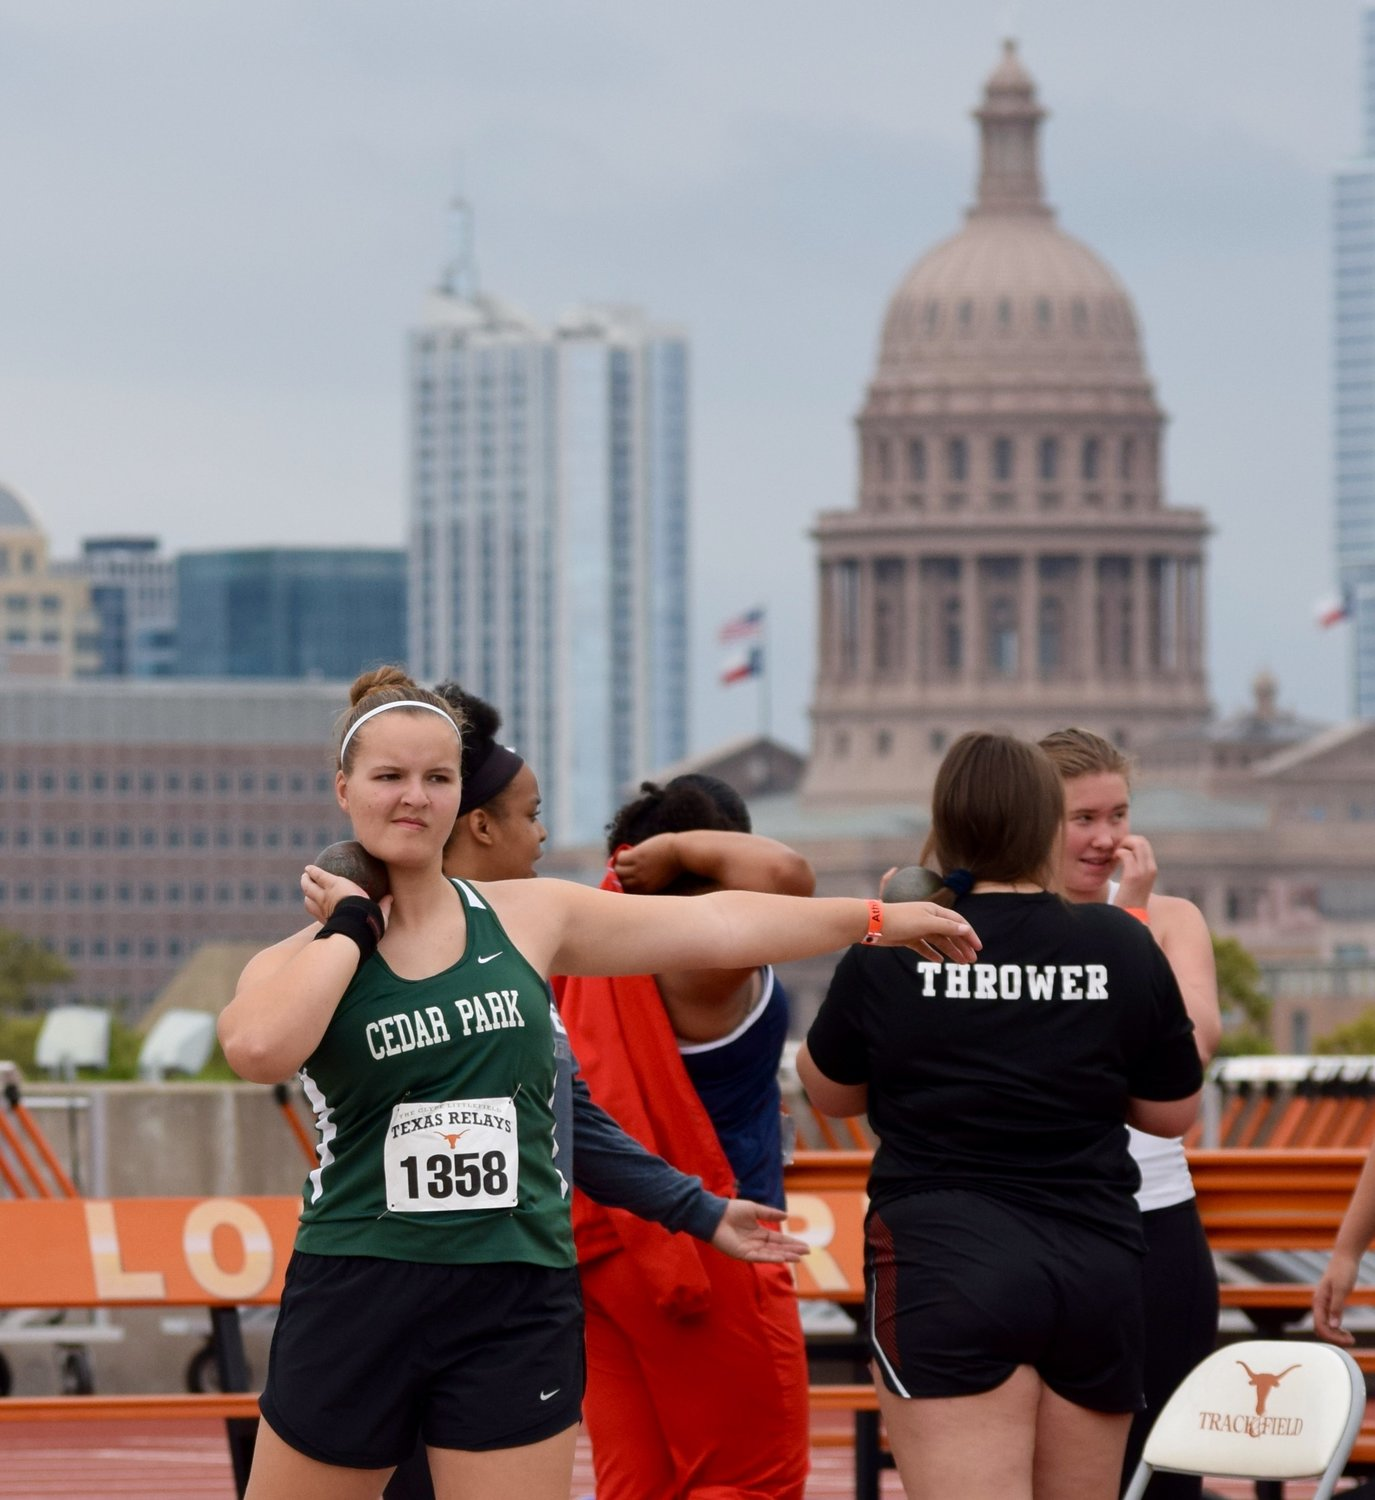 Cedar Park freshman Grace Aggen competed in the shot put competition at the Texas Relays Saturday at the University of Texas.